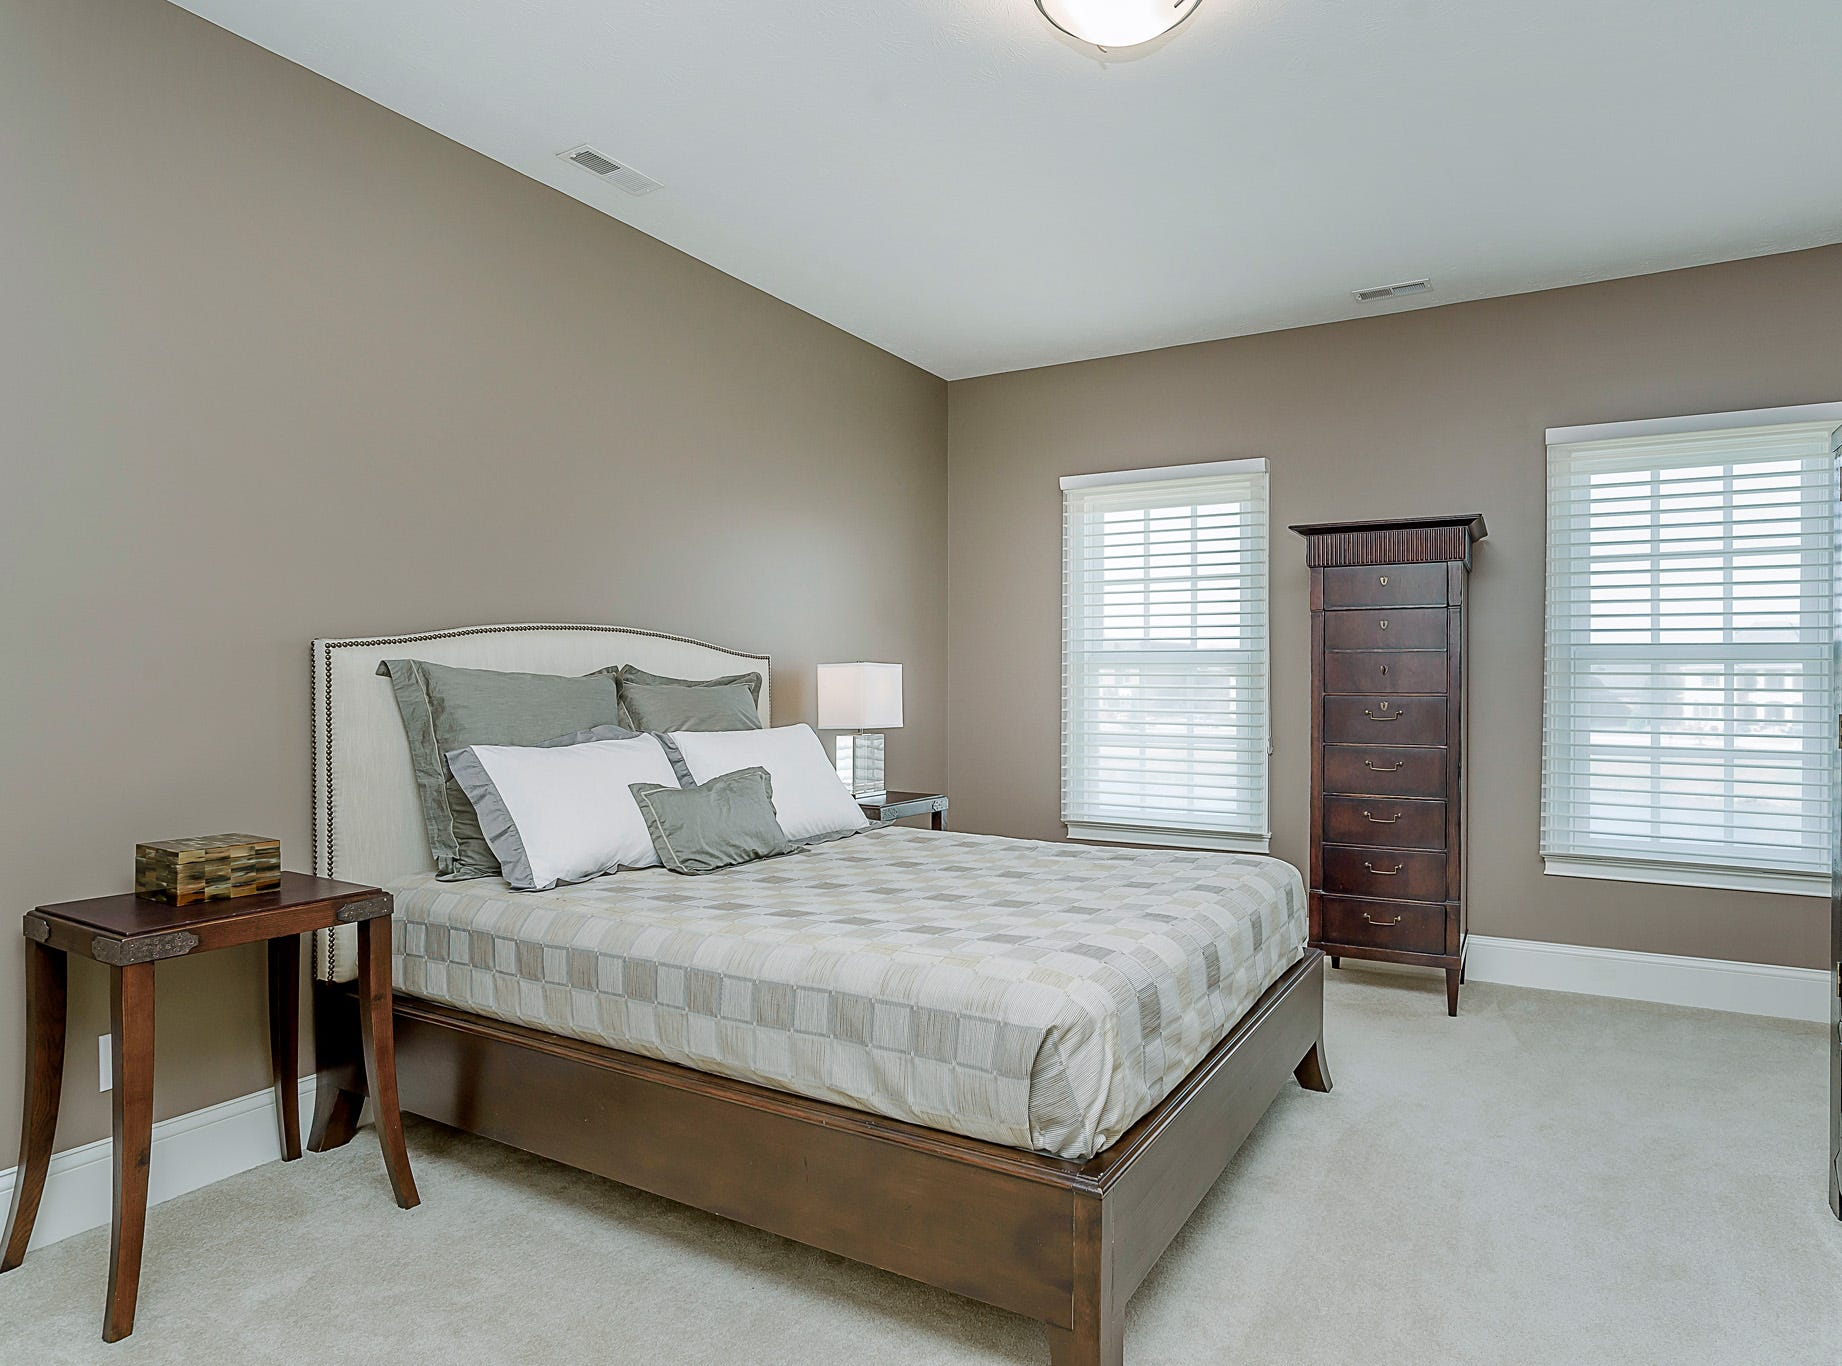 Bedroom on the second floor which also features a walk-in closet and access to Jack and Jill bathroom.